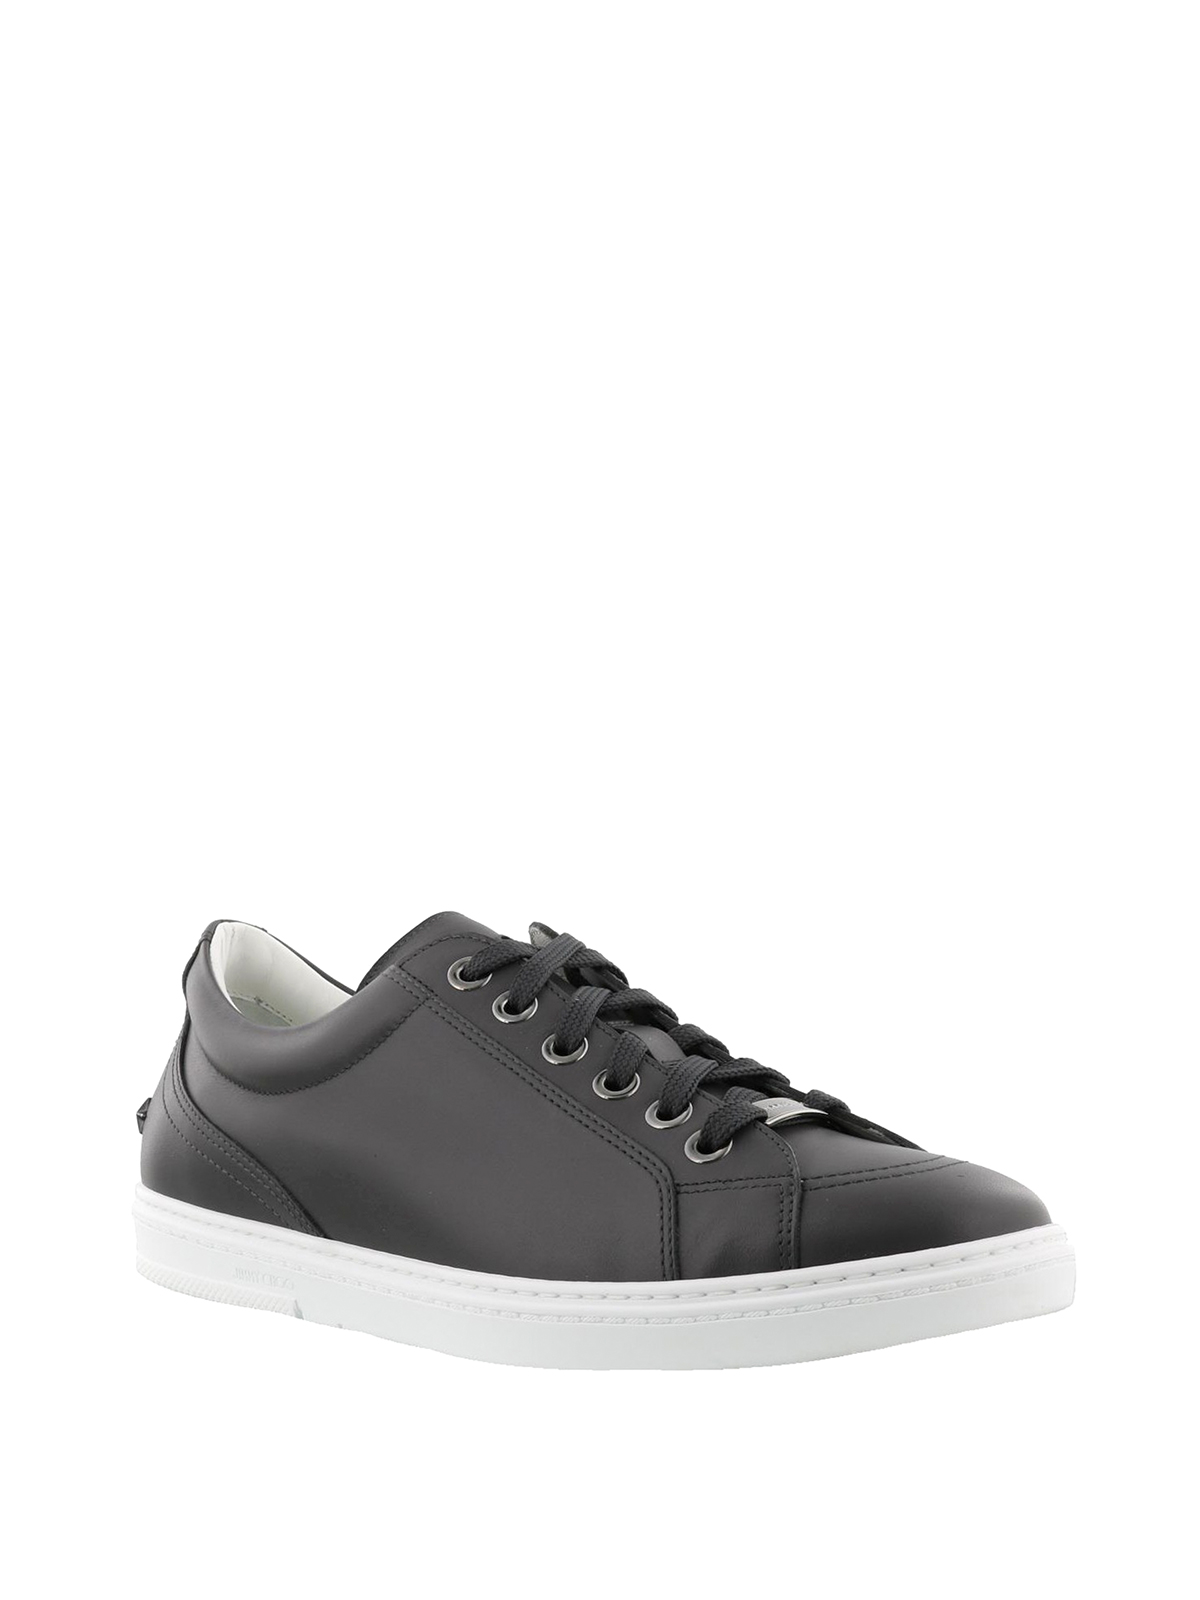 Jimmy choo Leather Cash Sneakers